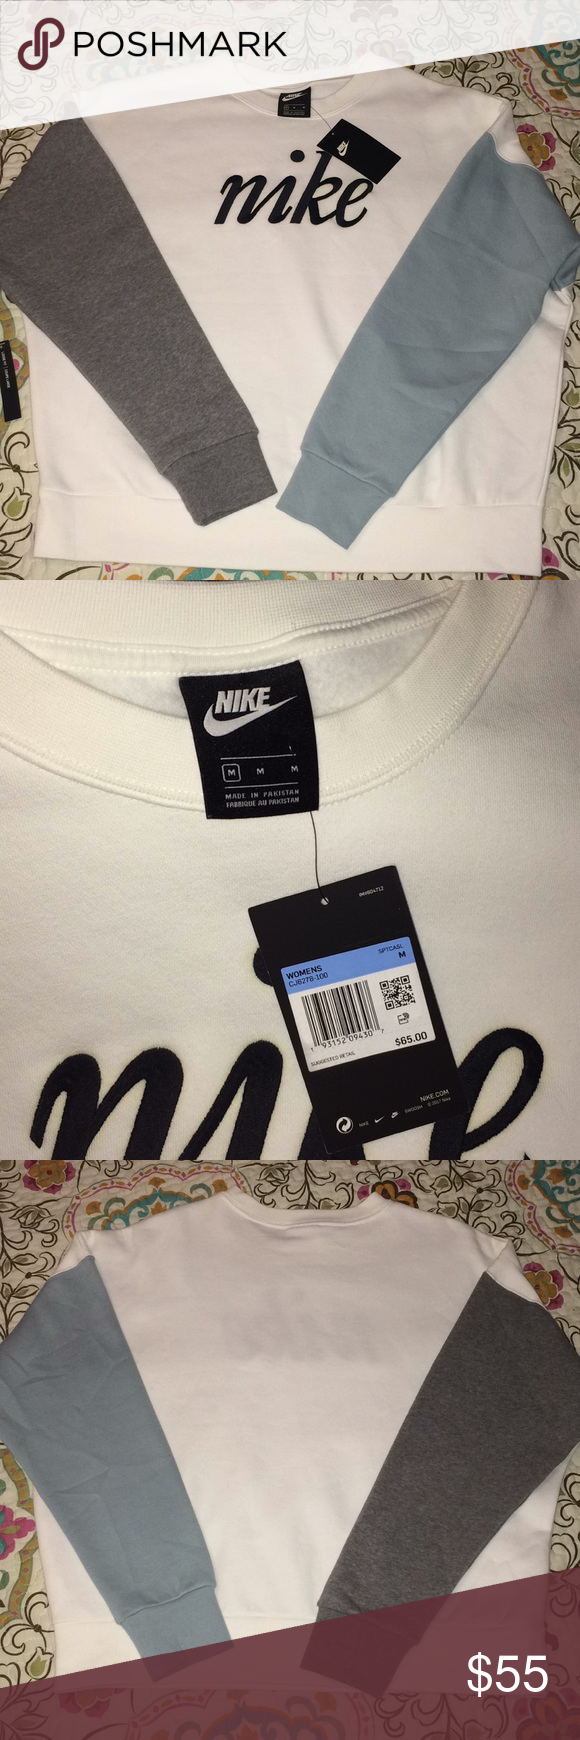 Nike Color Block Sweatshirt New With Tags Fast Shipping Nike Crewneck Pullover White Blue Grey Ribbing O Color Block Sweatshirt Nike Crewneck Sweatshirts [ 1740 x 580 Pixel ]